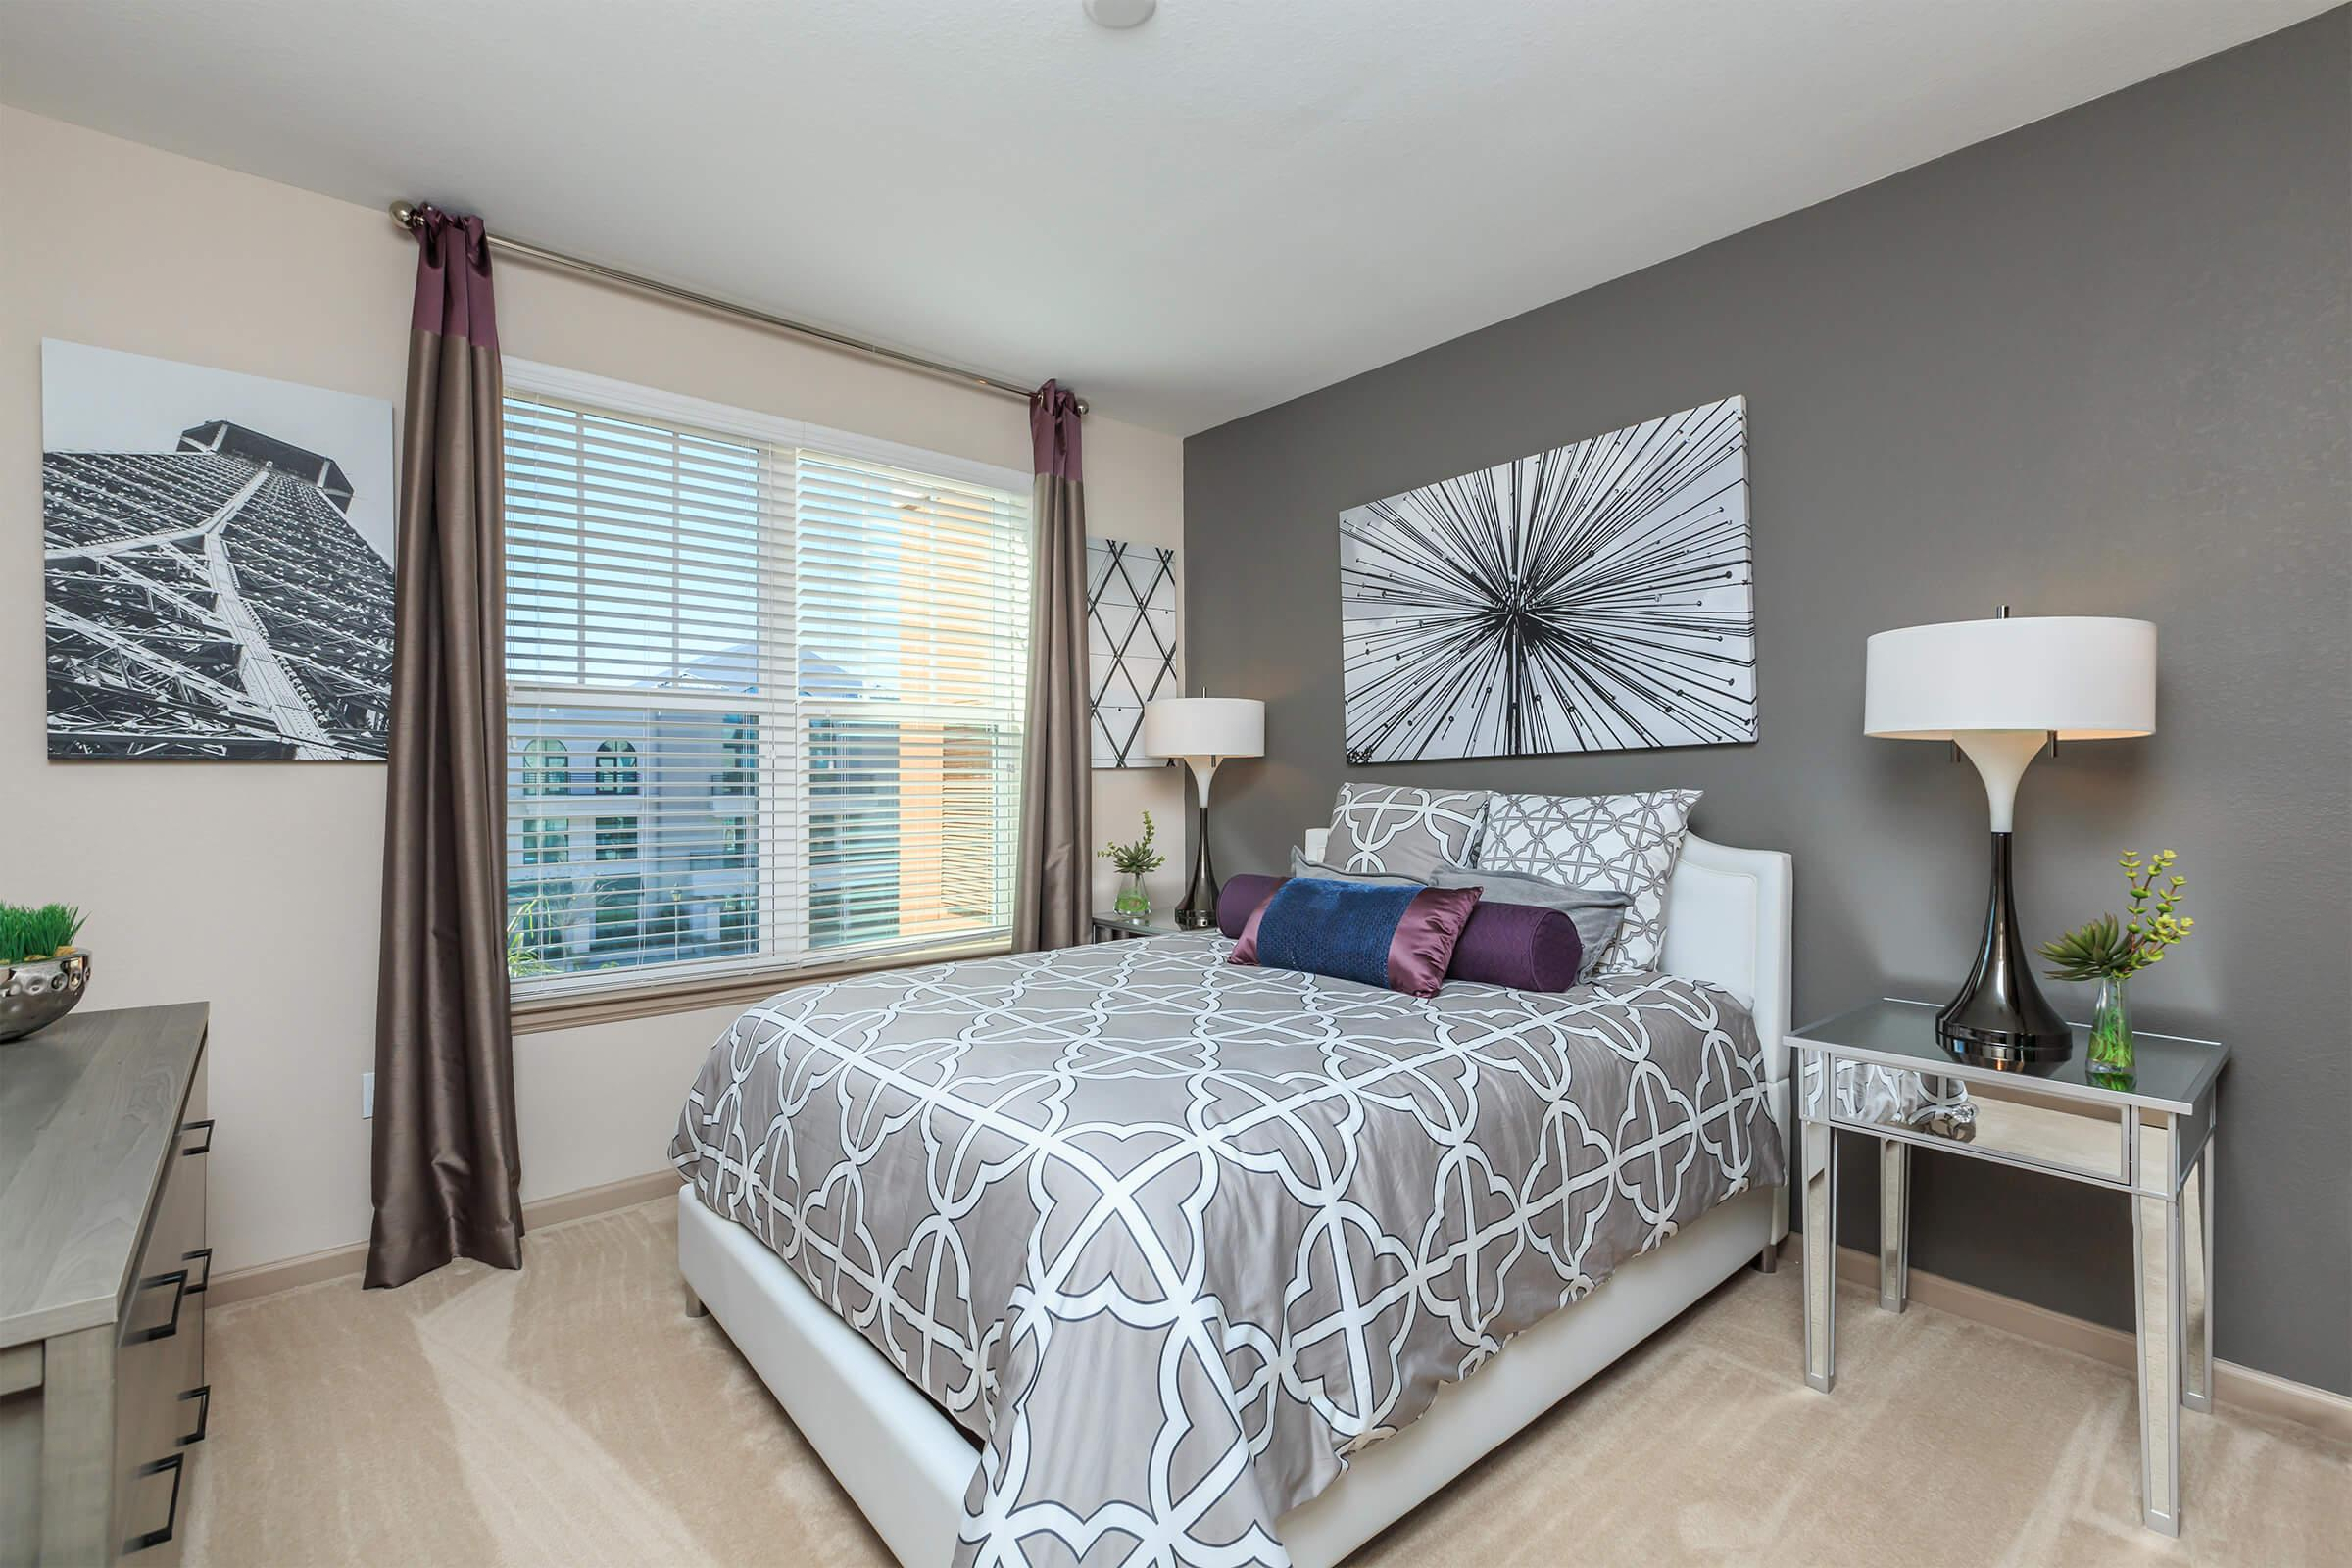 Bedroom at RiZE at Winter Springs Apartments in Winter Springs, FL